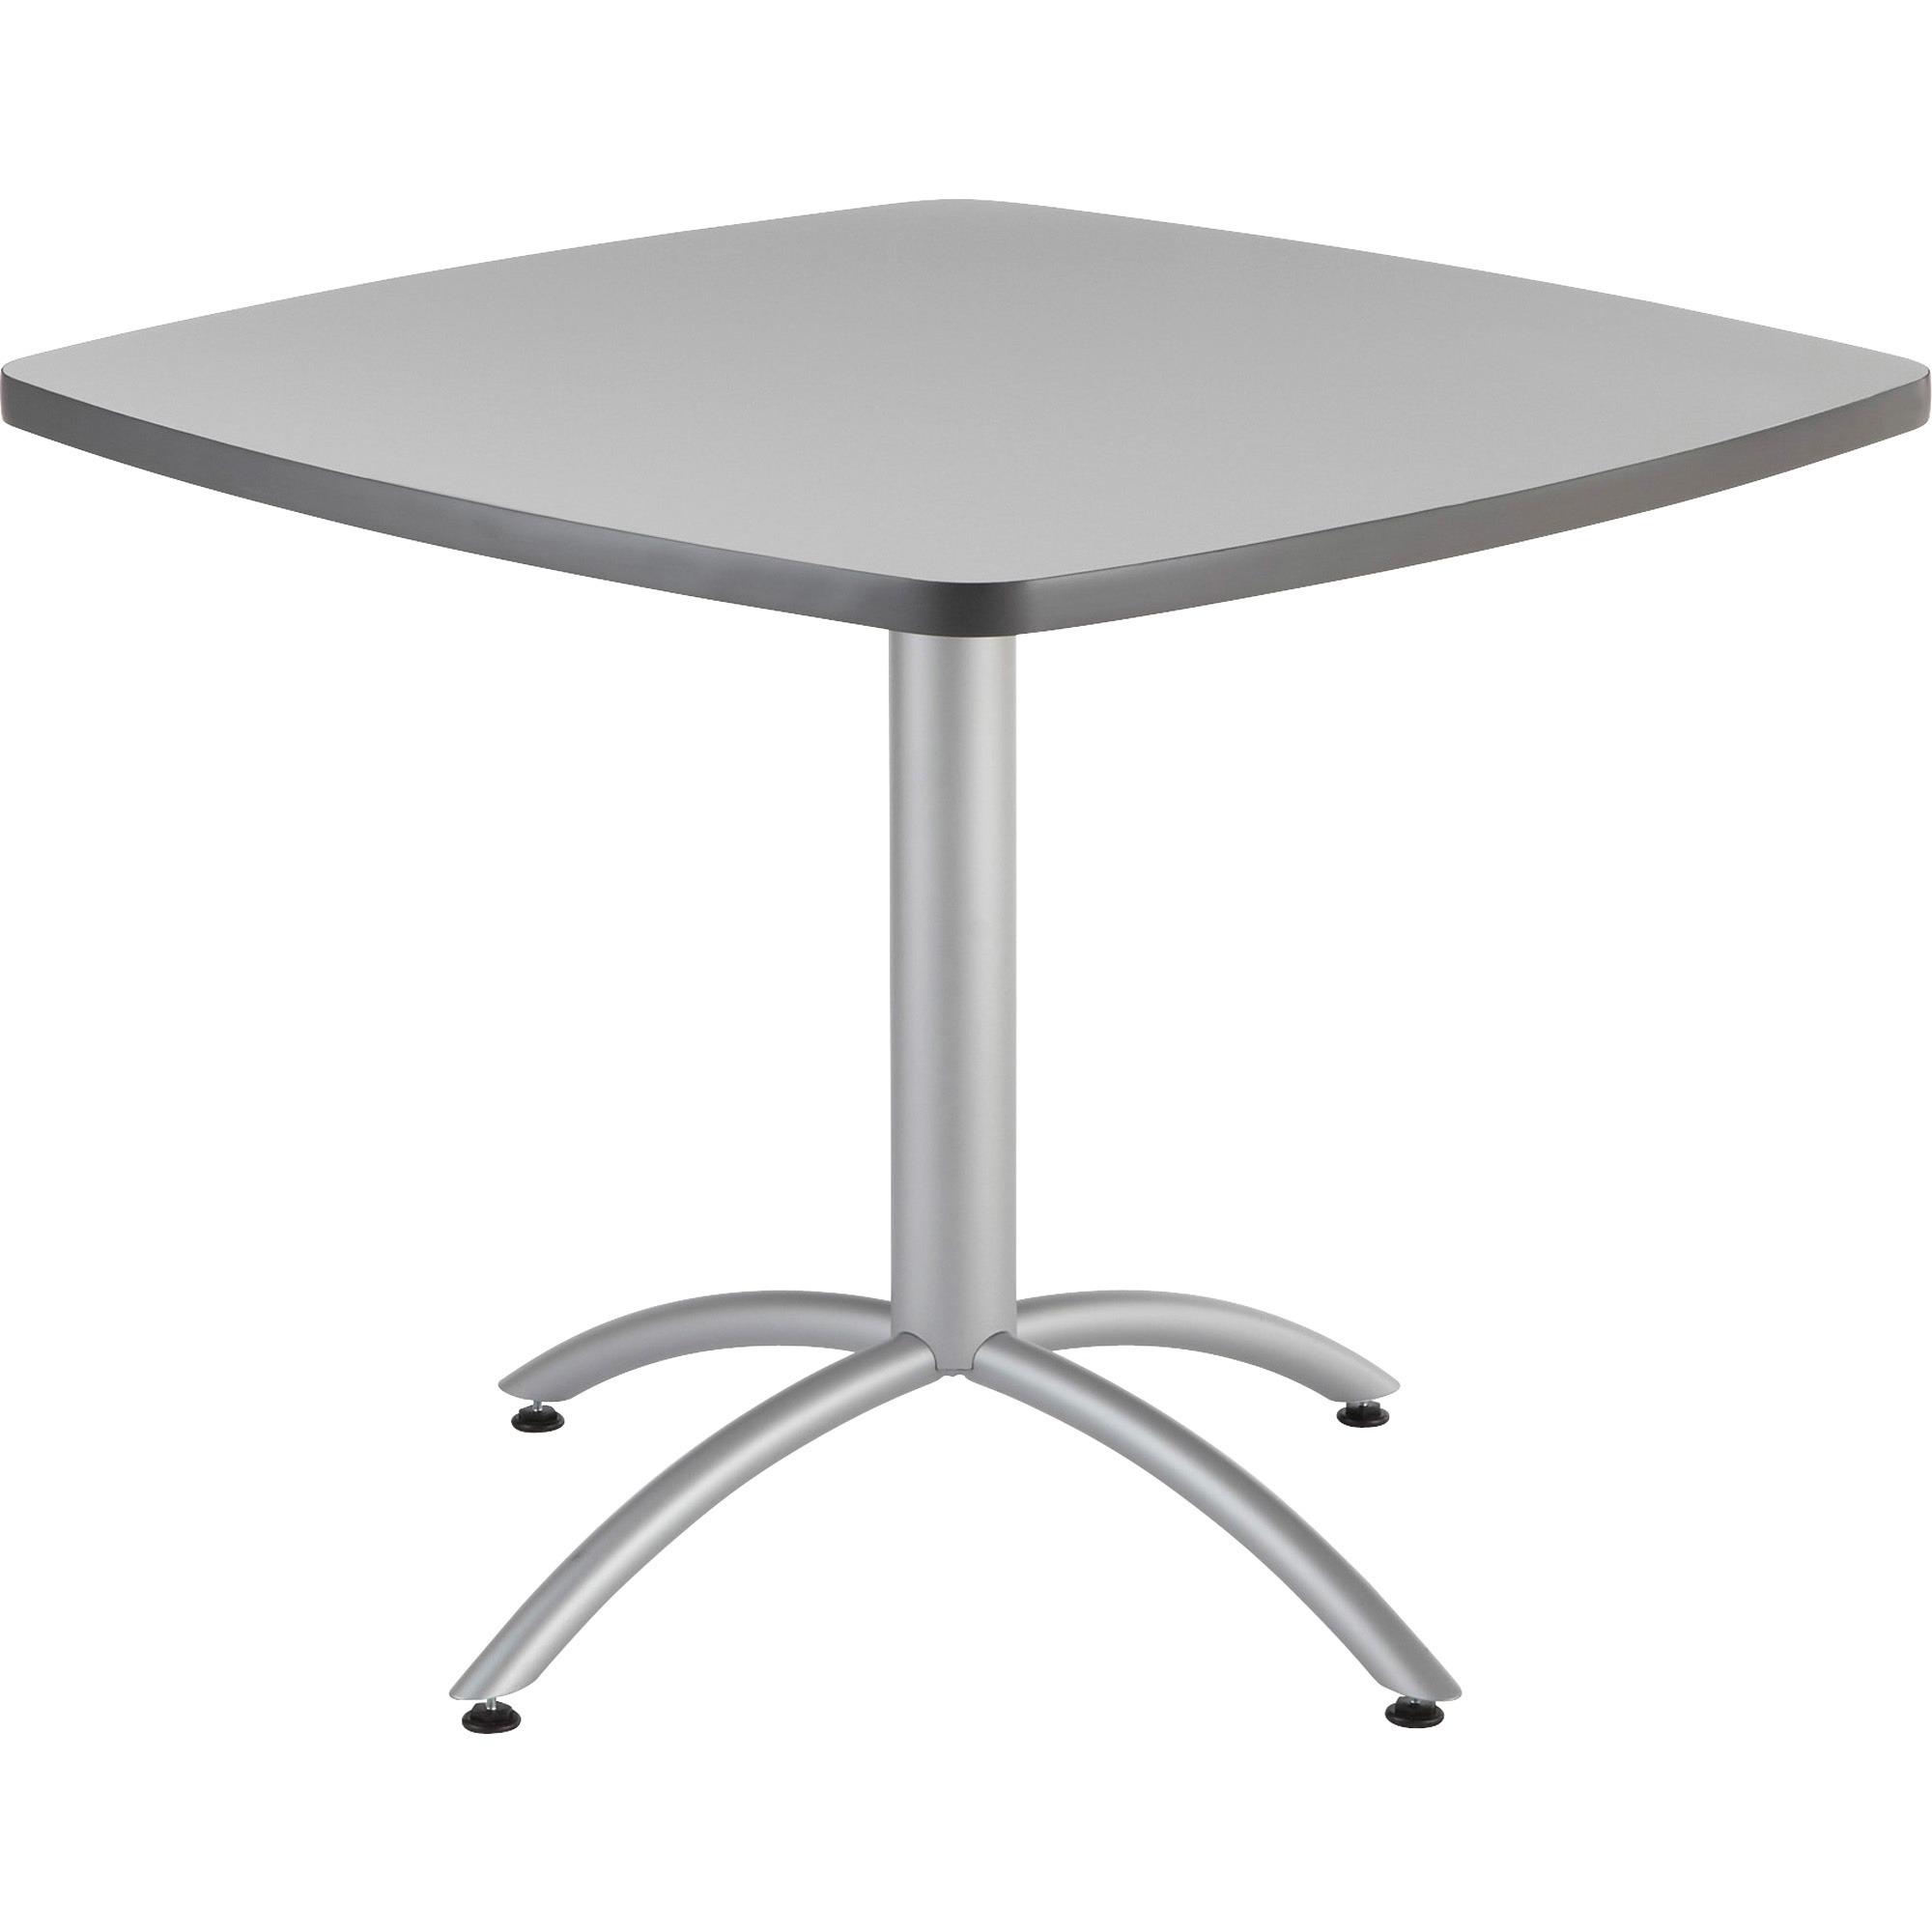 Kamloops Office Systems Furniture Furniture Collections Desks - Conference room table height